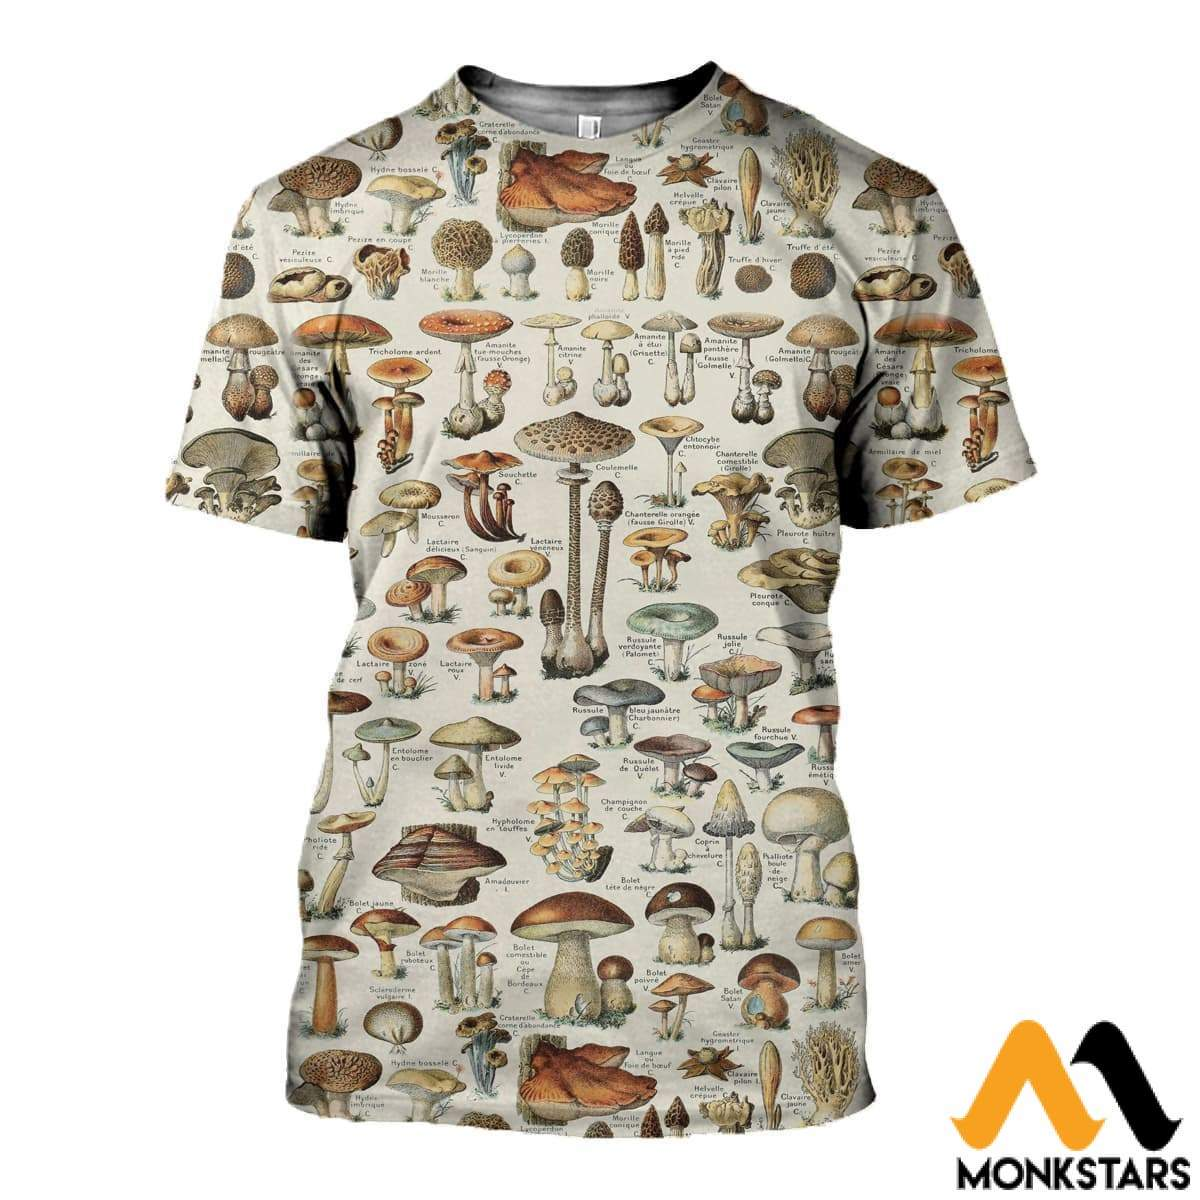 3D All Over Printed Champignons Clothes T-Shirt / Xs